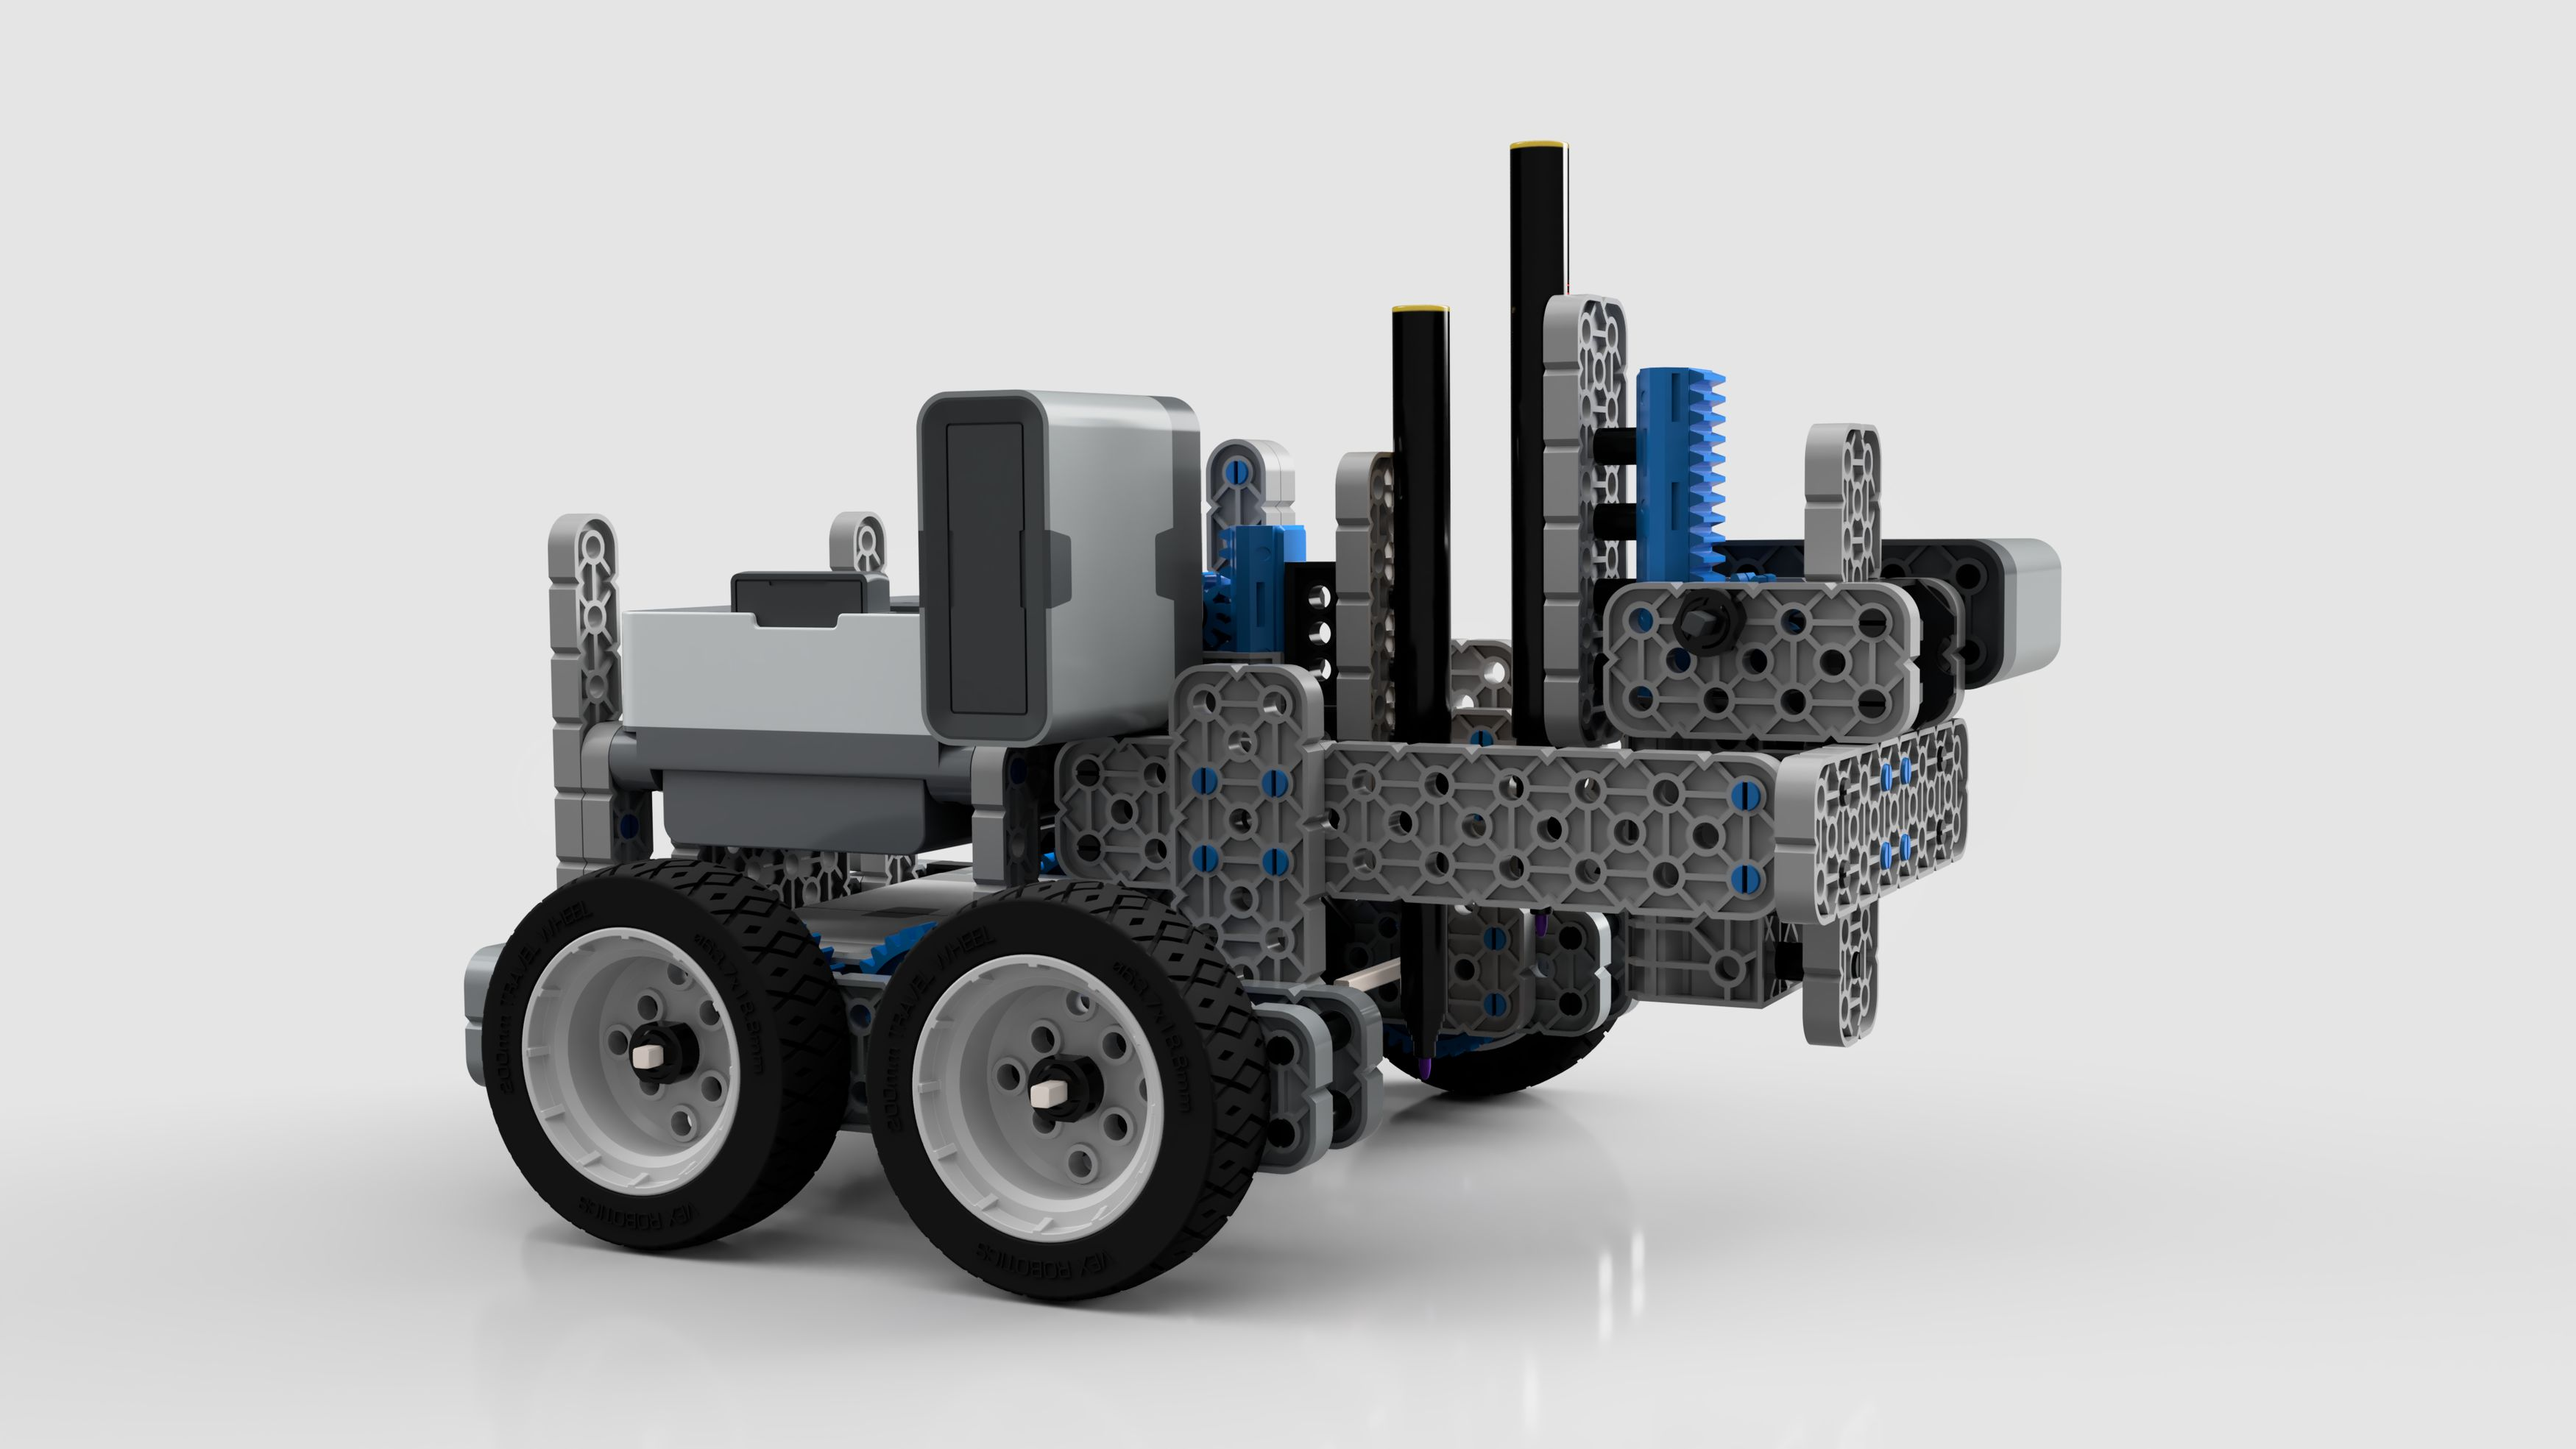 Vex-iq-robot-caneta-2020-may-24-05-59-40pm-000-customizedview27755215992-png-3500-3500